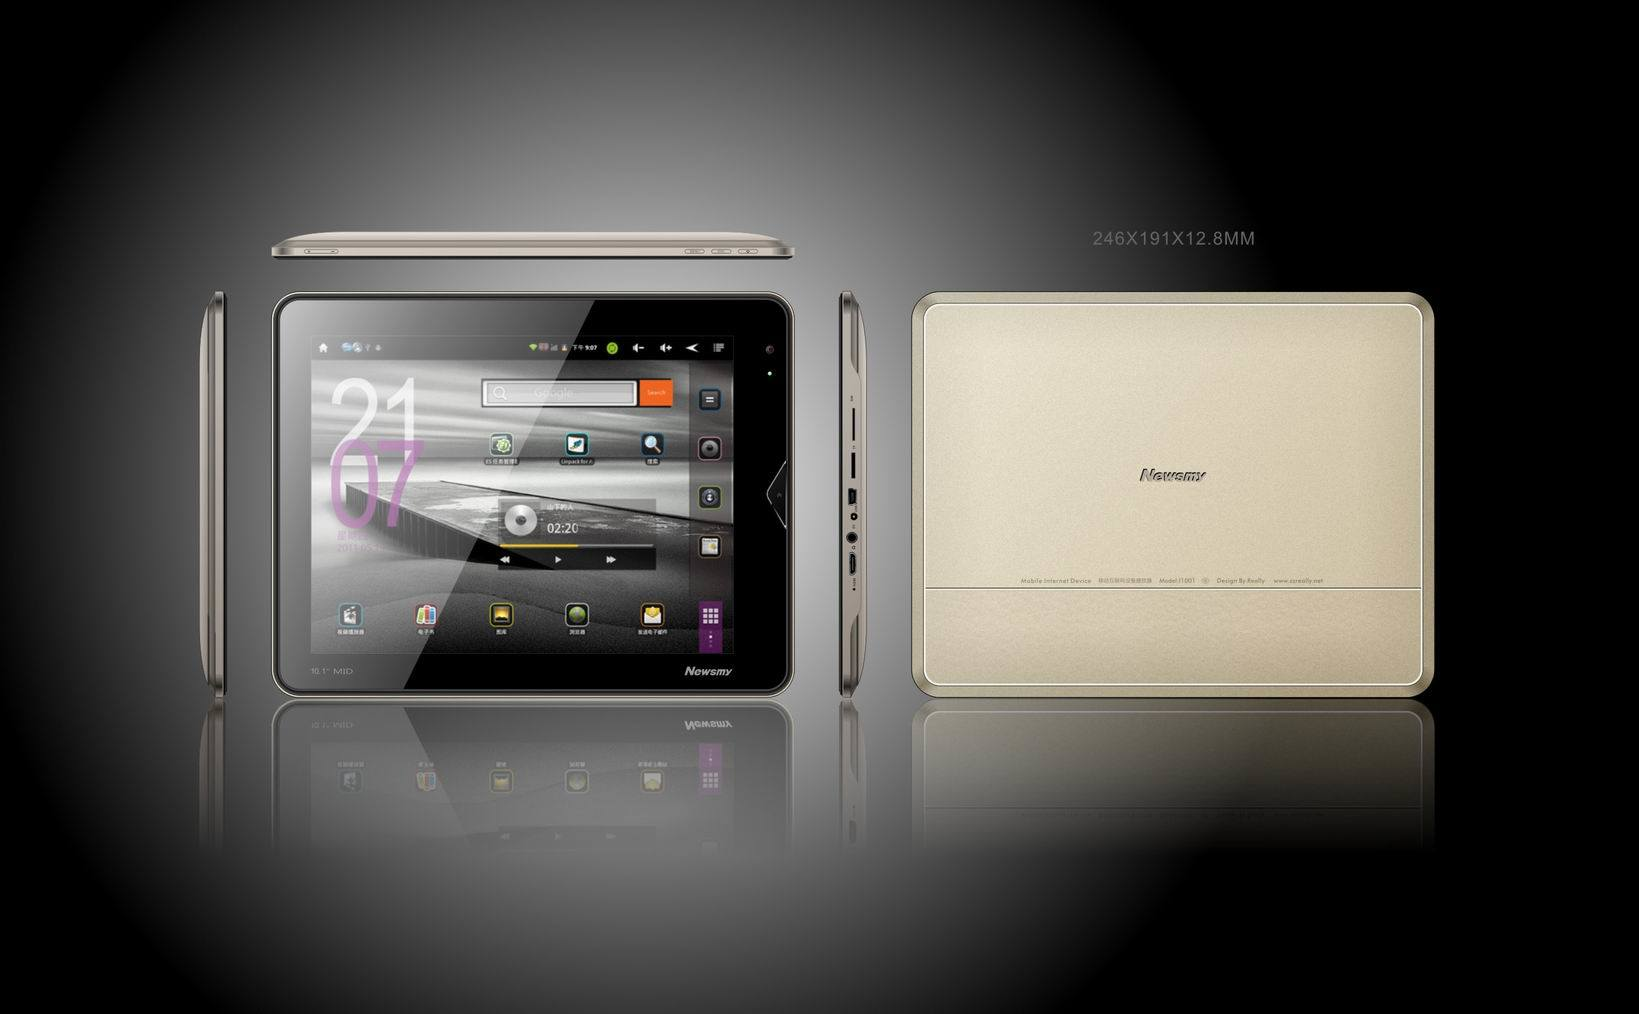 T10 Tablet PC Google Android System 2.3 & 9.7 Inch Capacitive Touch